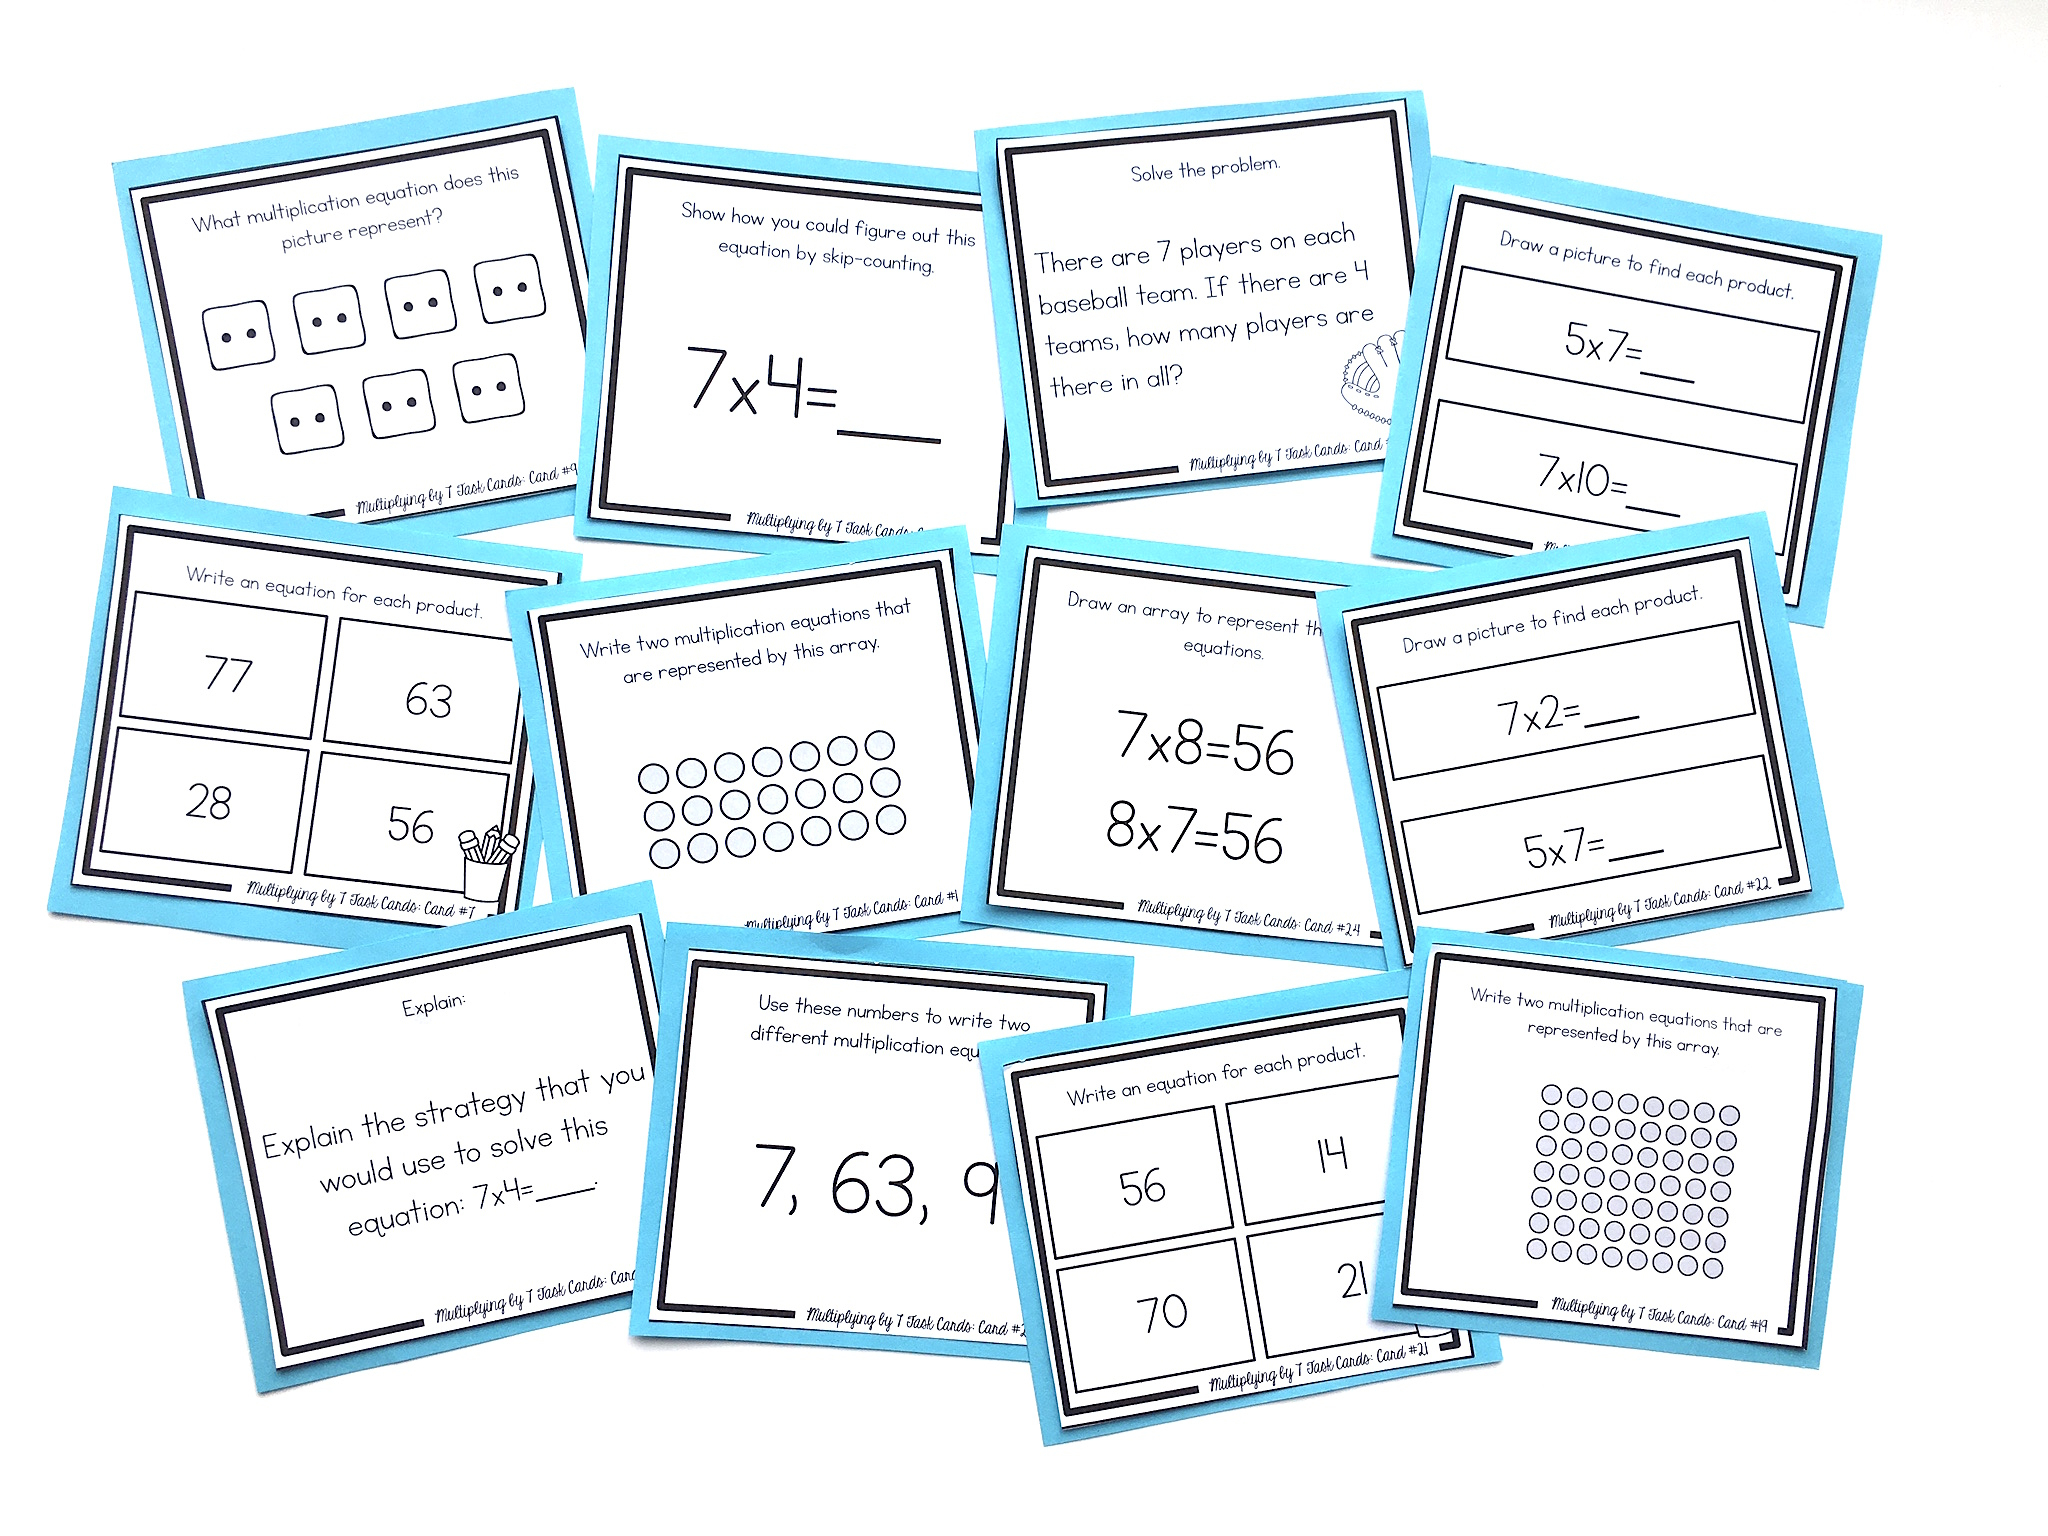 How To Teach The 6's, 7's, And 8's Multiplication Facts